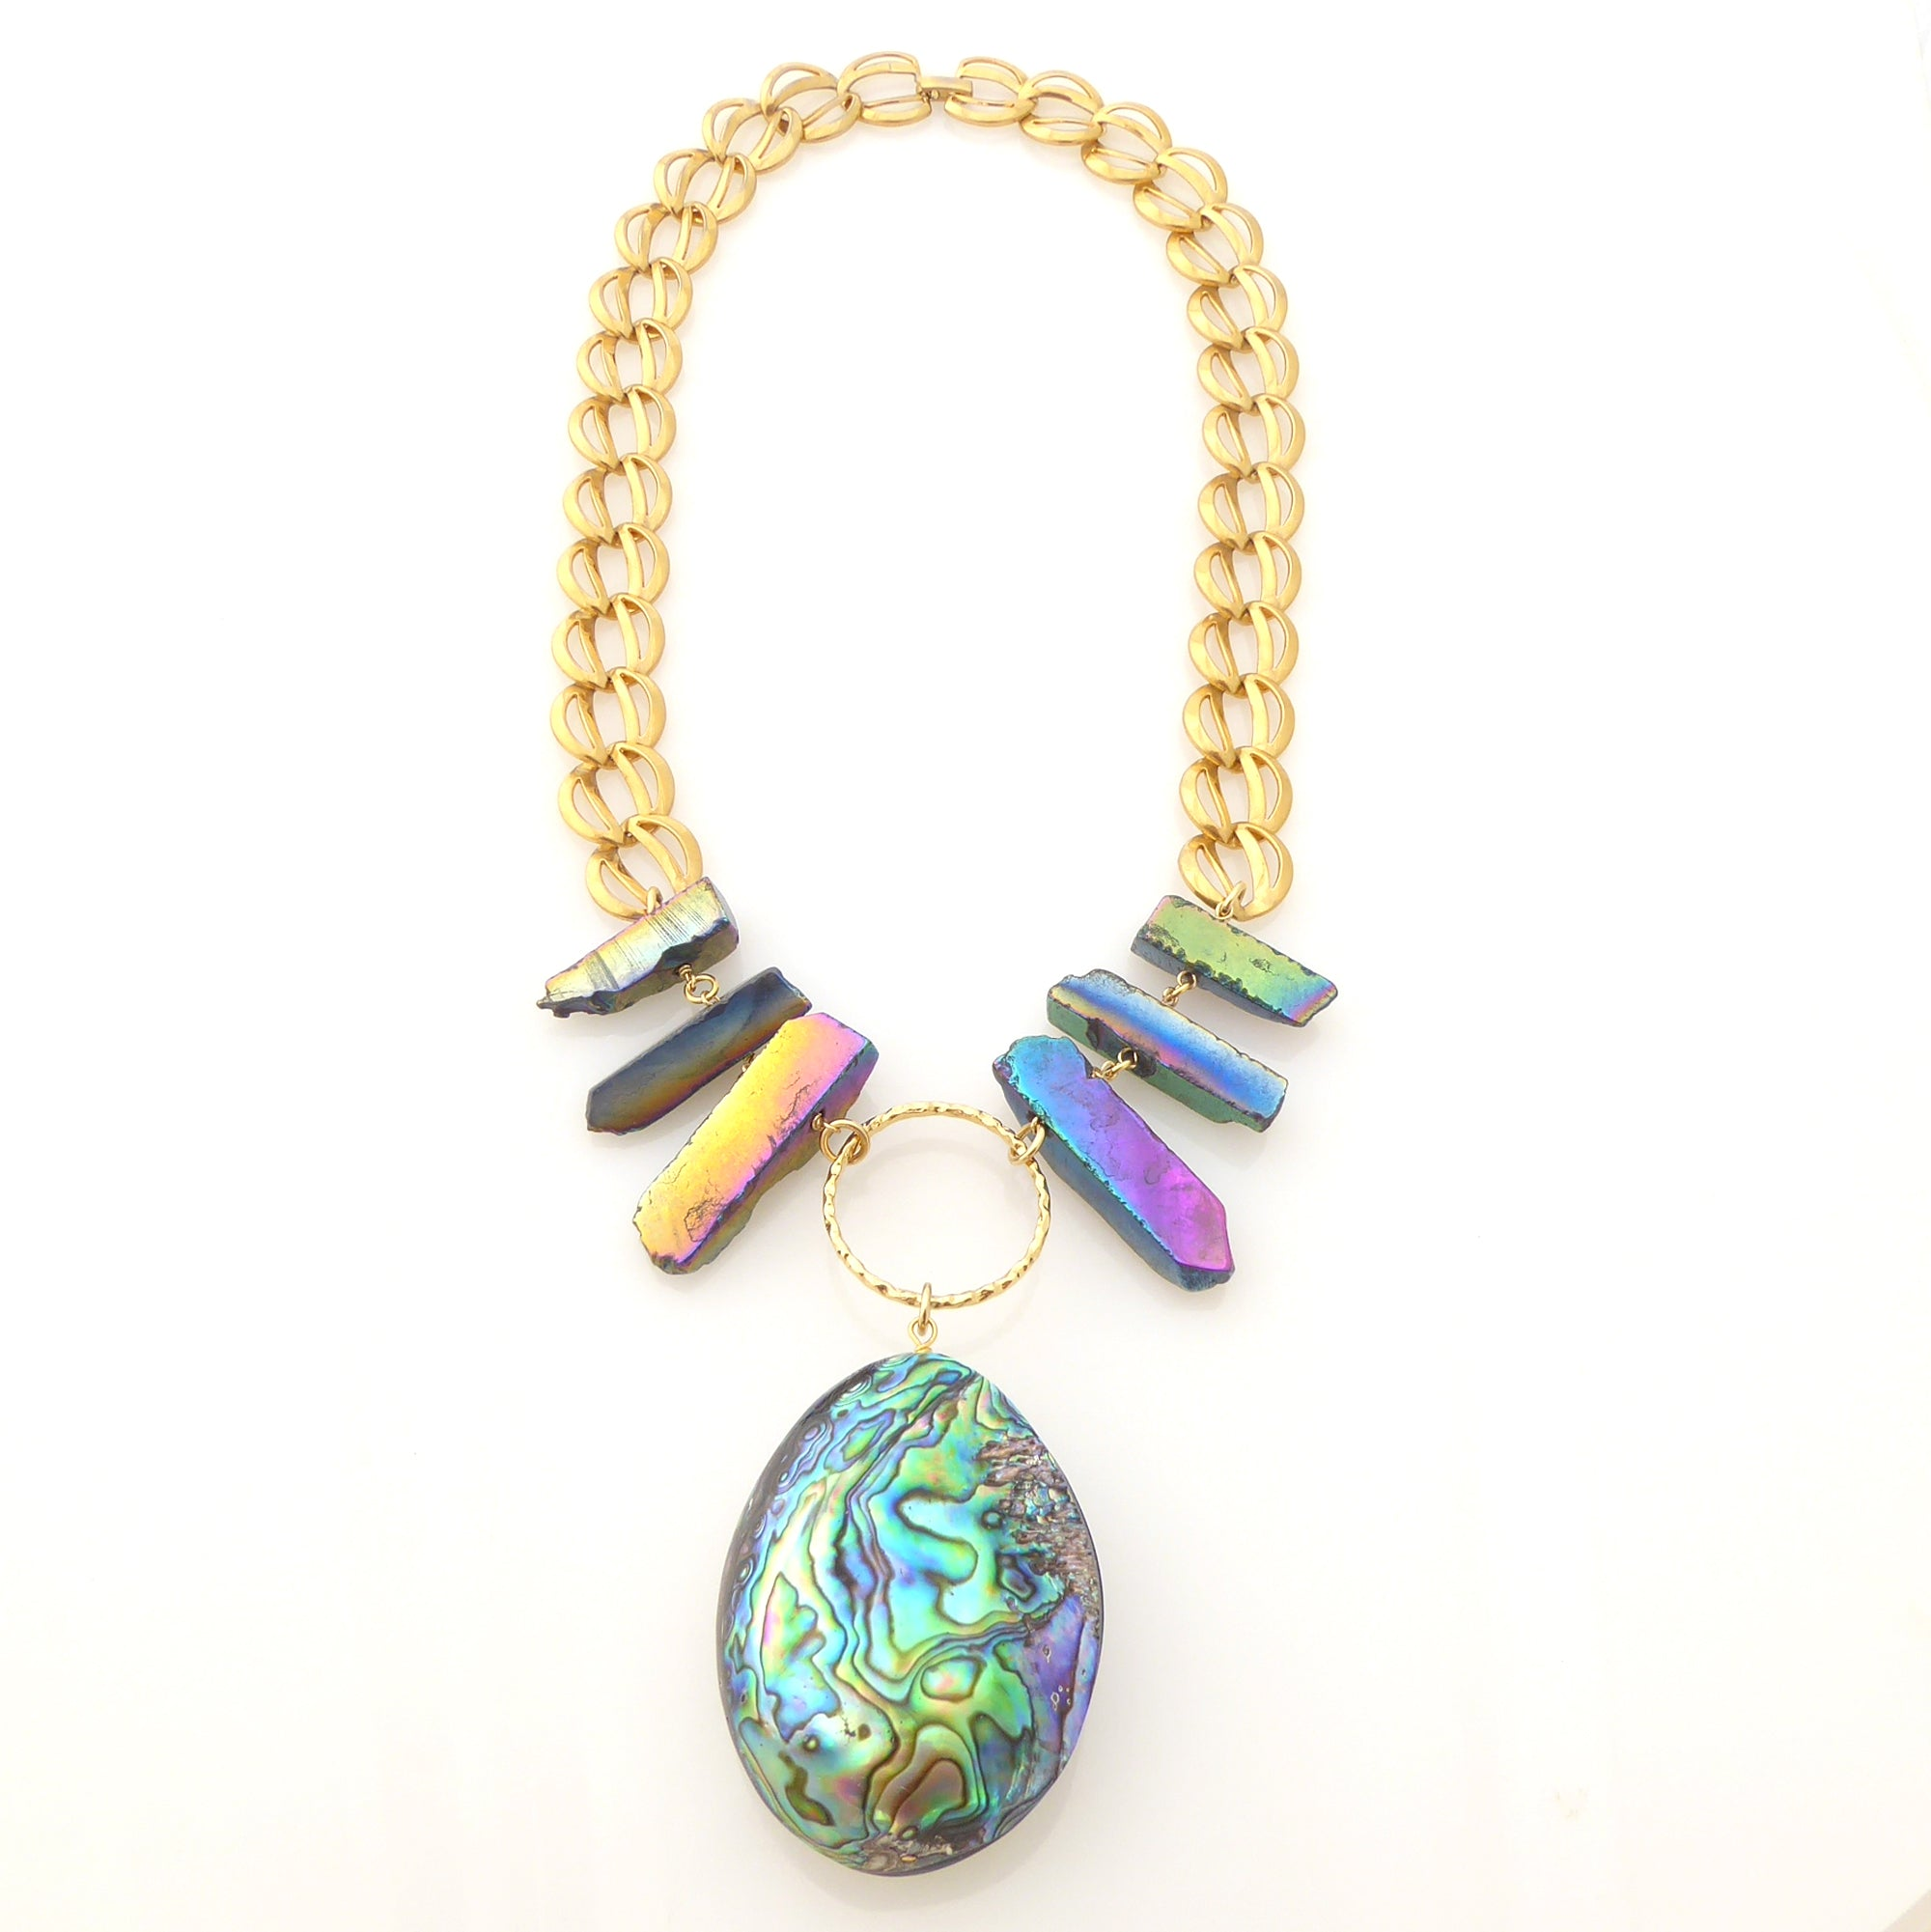 Paua teardrop necklace